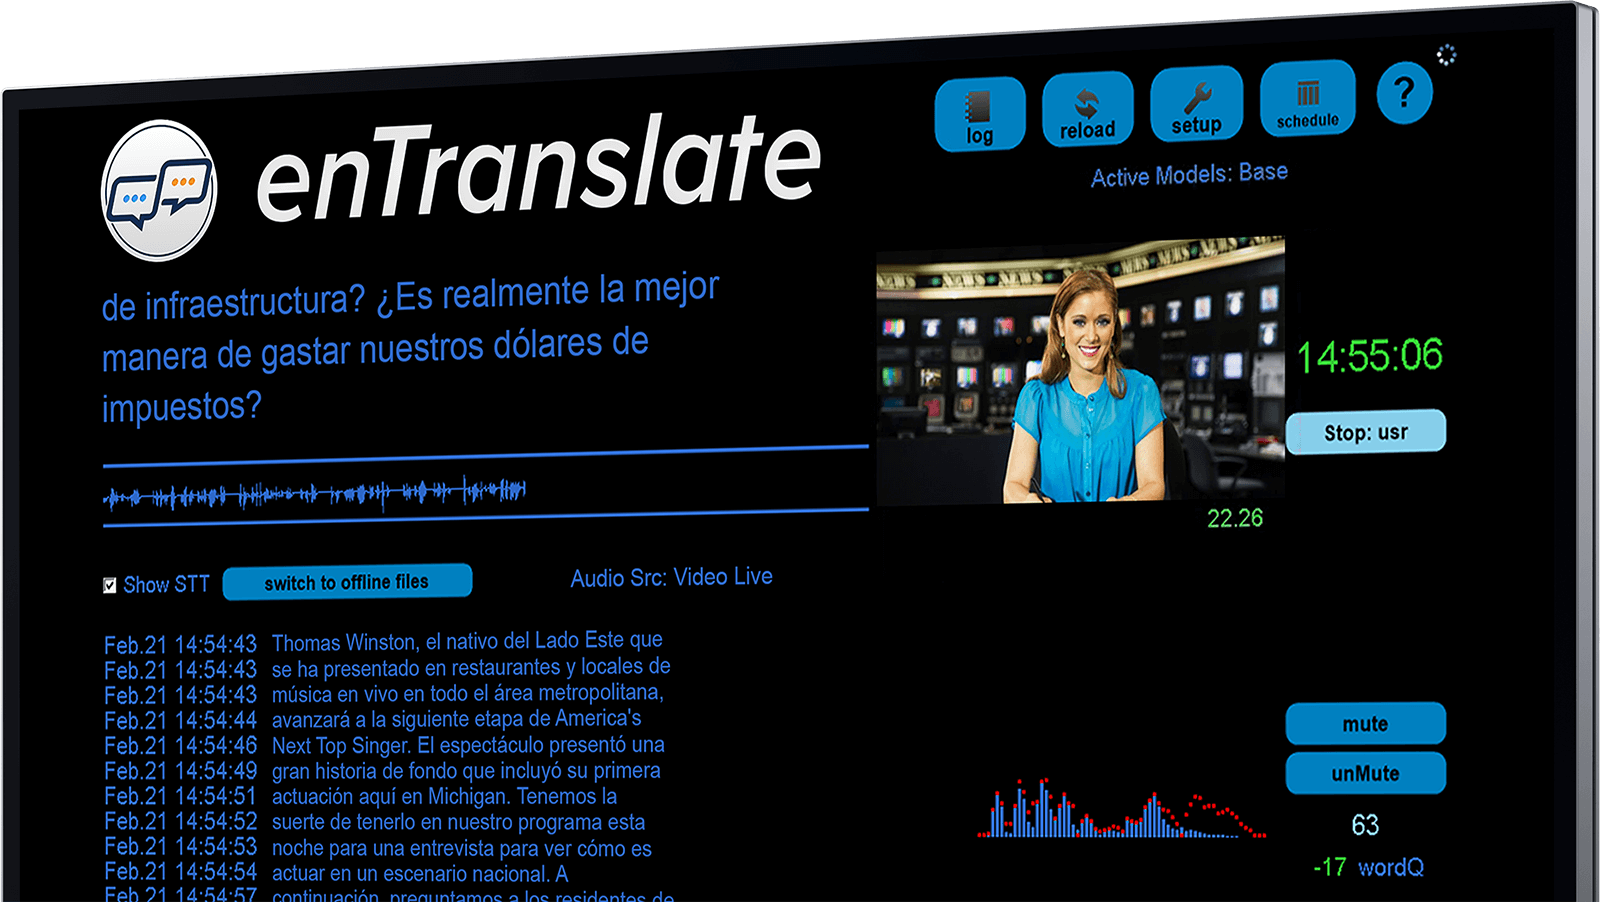 A screenshot of enTranslate's main screen